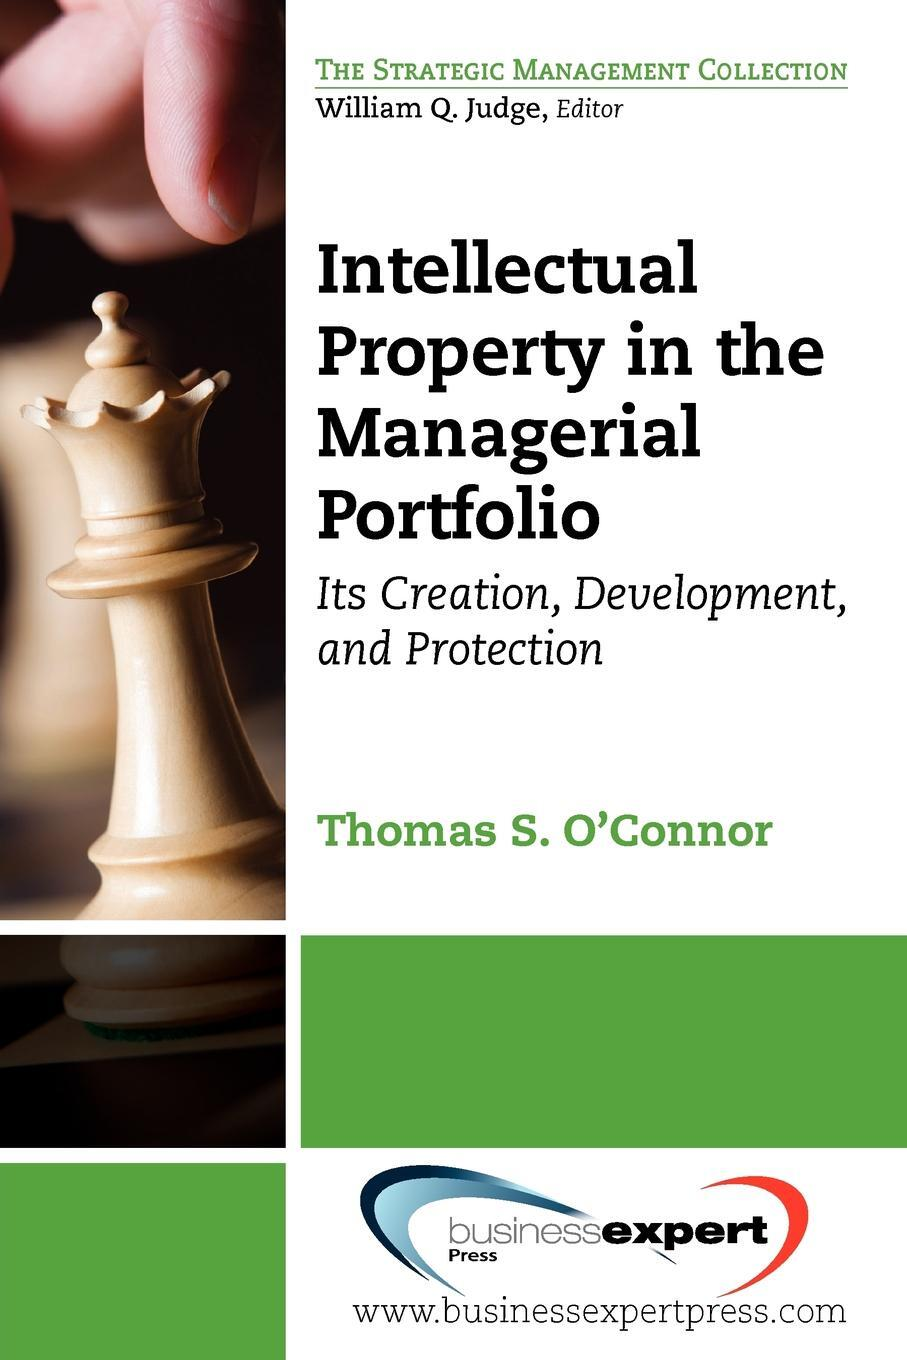 Intellectual Property in the Managerial Portfolio. Its Creation, Development, and Protection